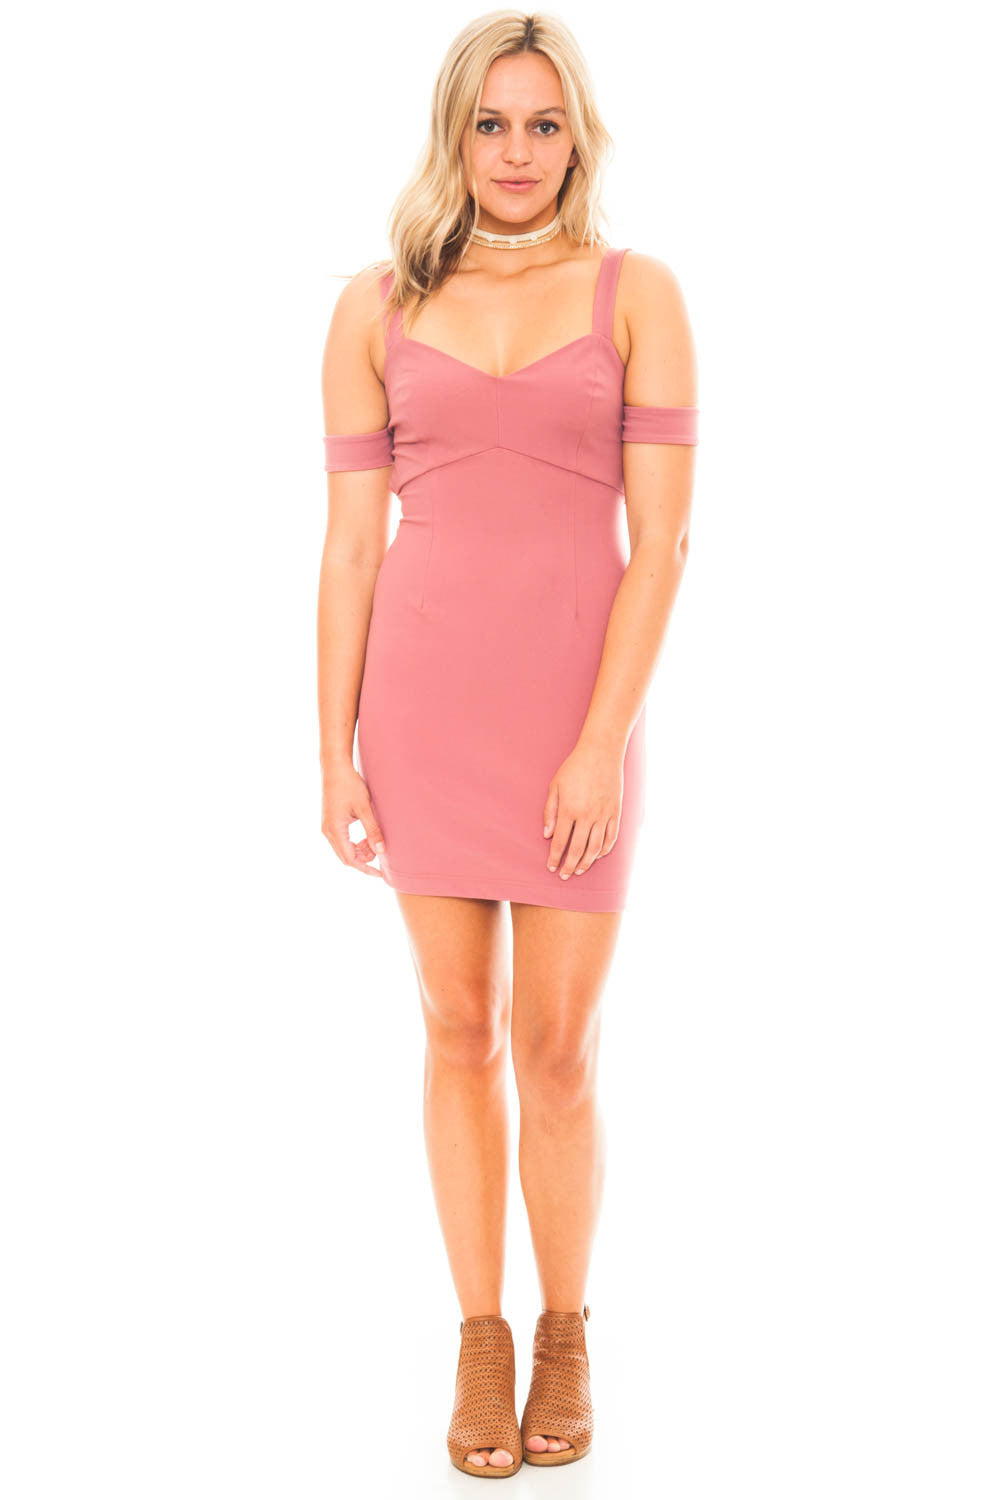 Dress - Bodycon Shoulder Cut-Out Dress by Lush